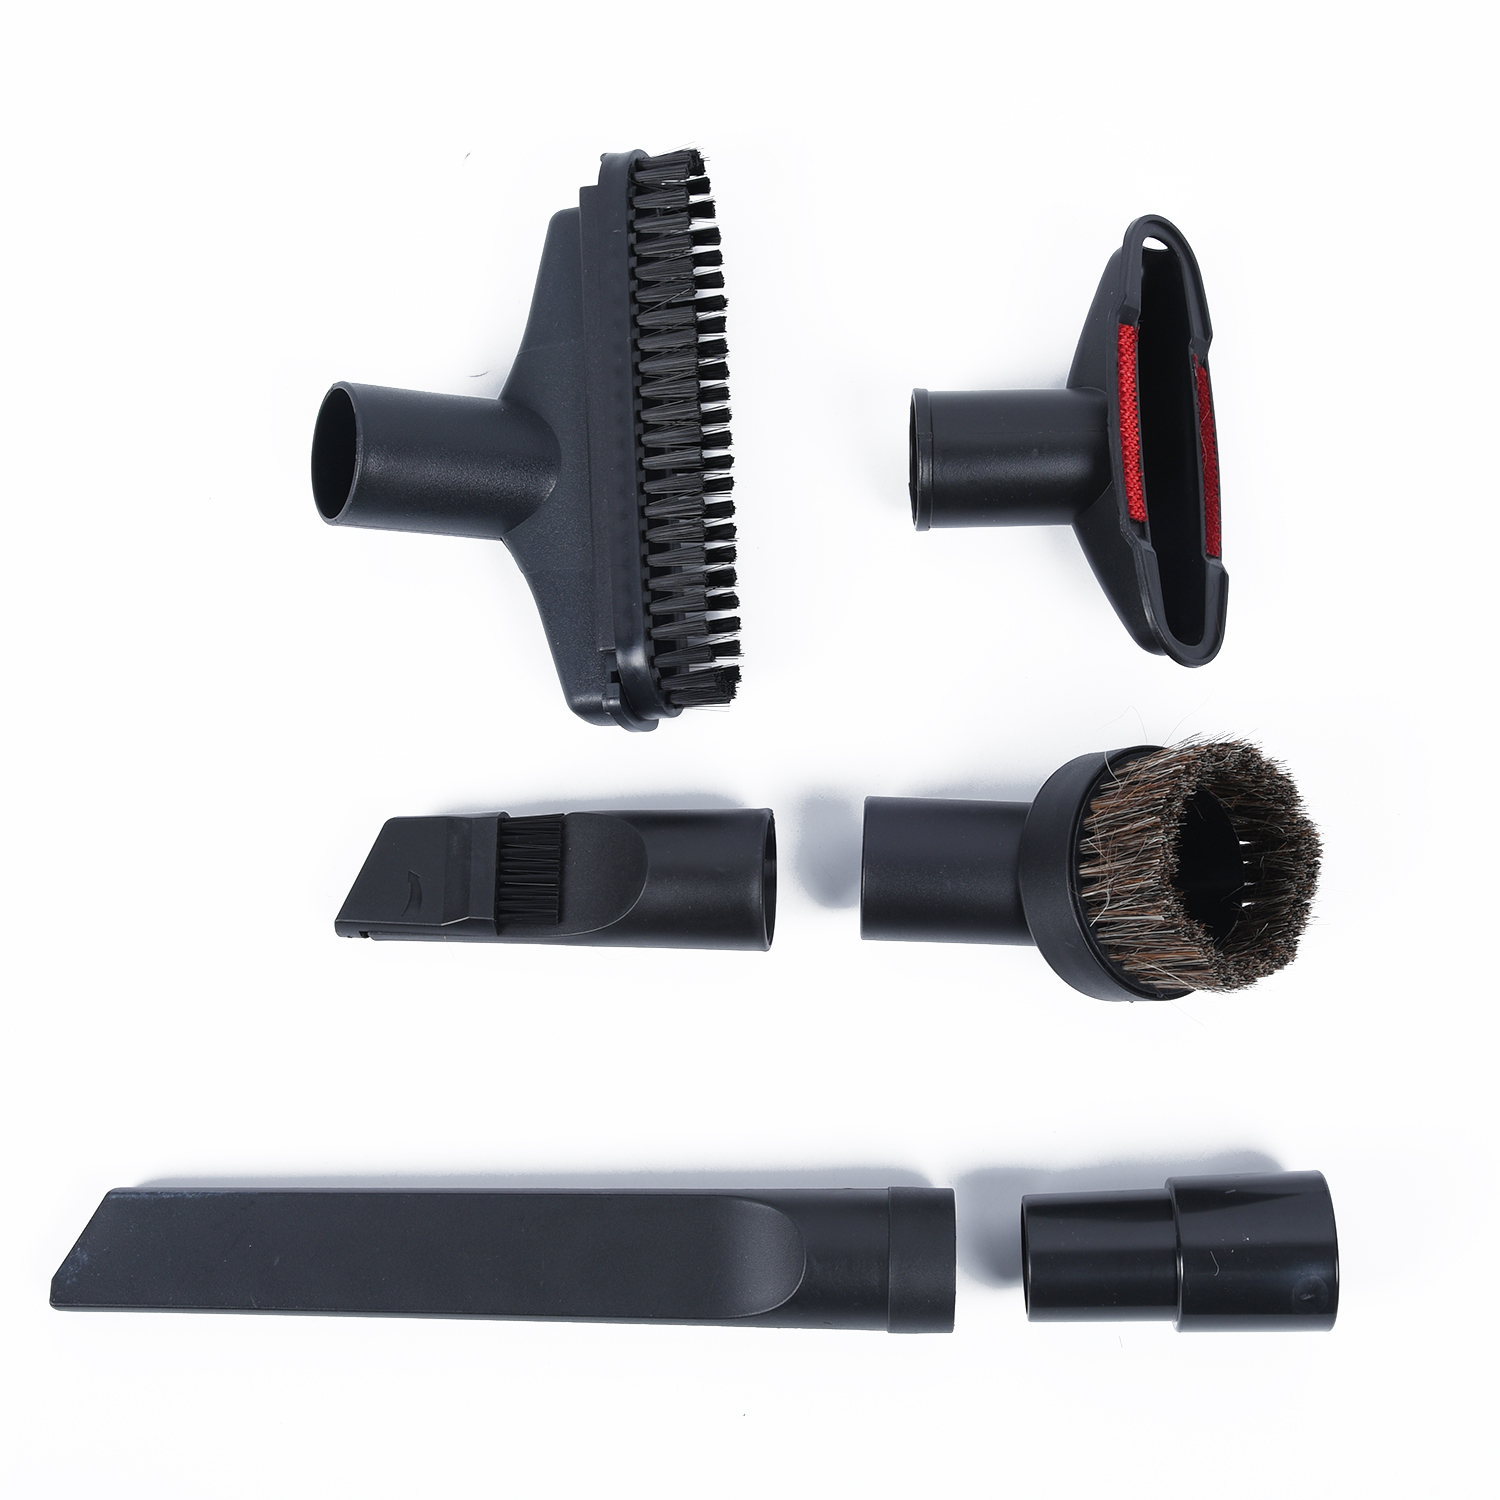 Detachable Brush Nozzle Adapter Kit Dust Dirt Remover Sweeping Cleaning Tools Vacuum Cleaner Replacement Parts